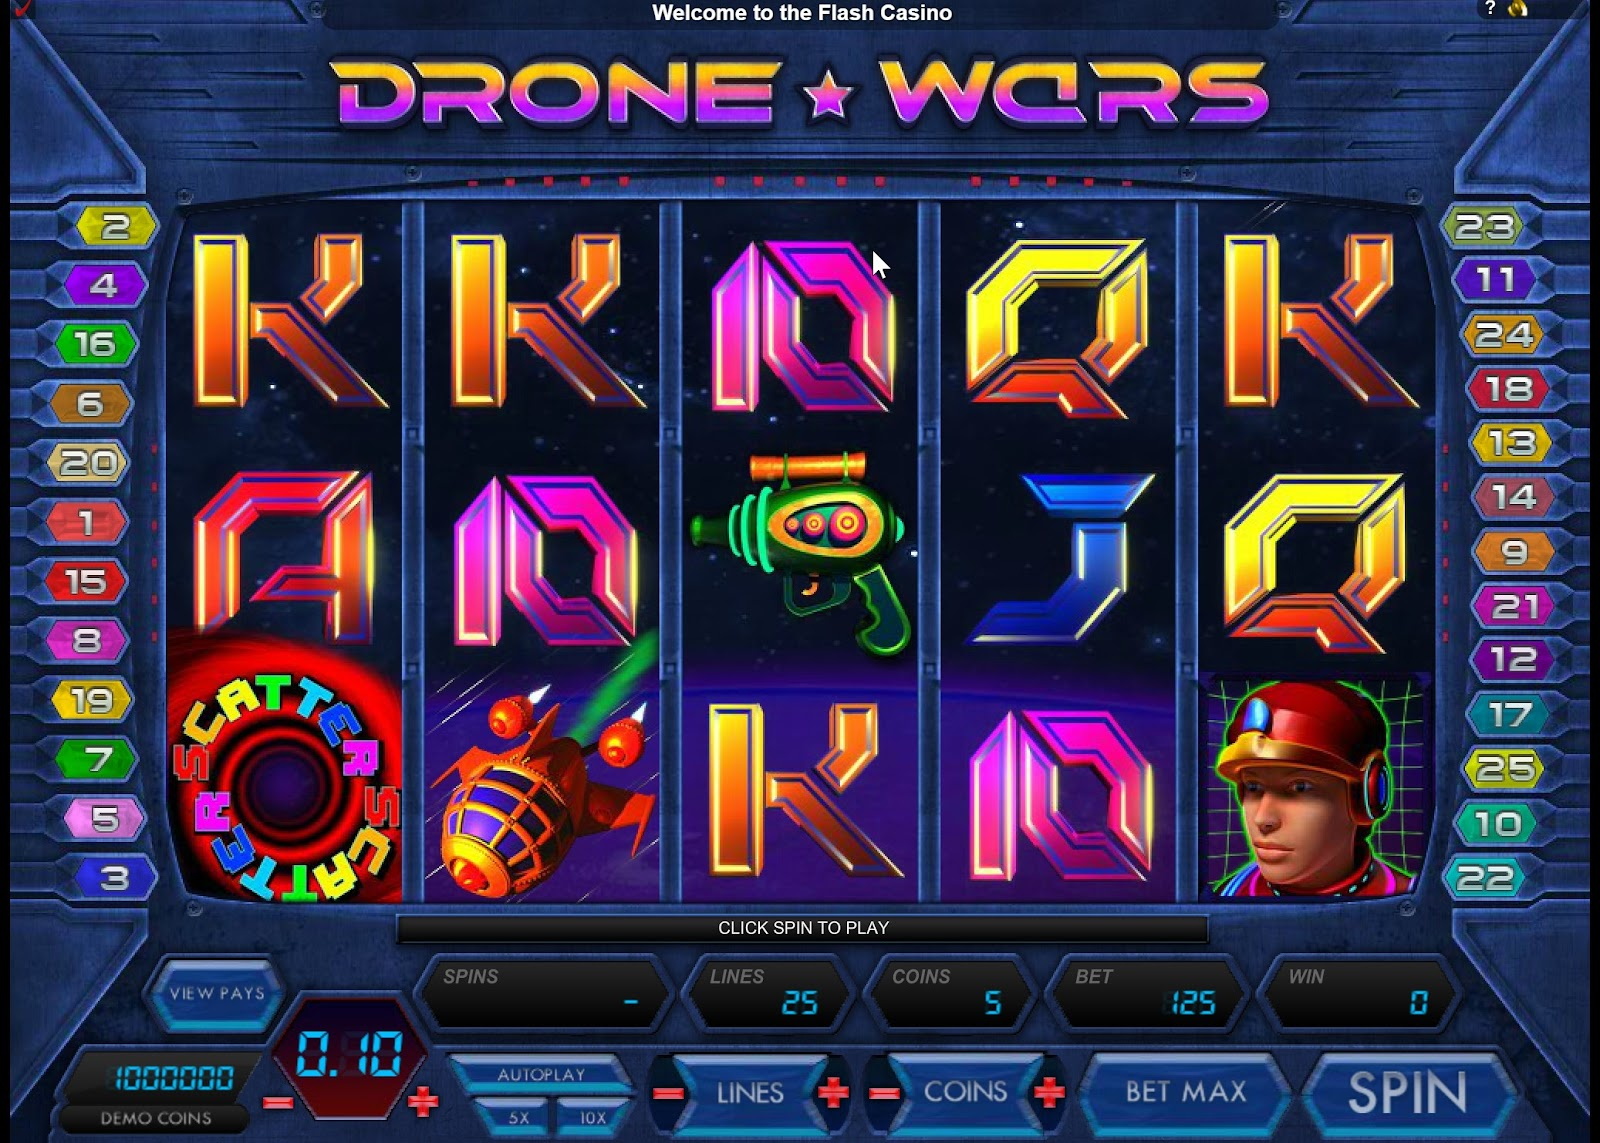 Drone Wars Slots Game Review